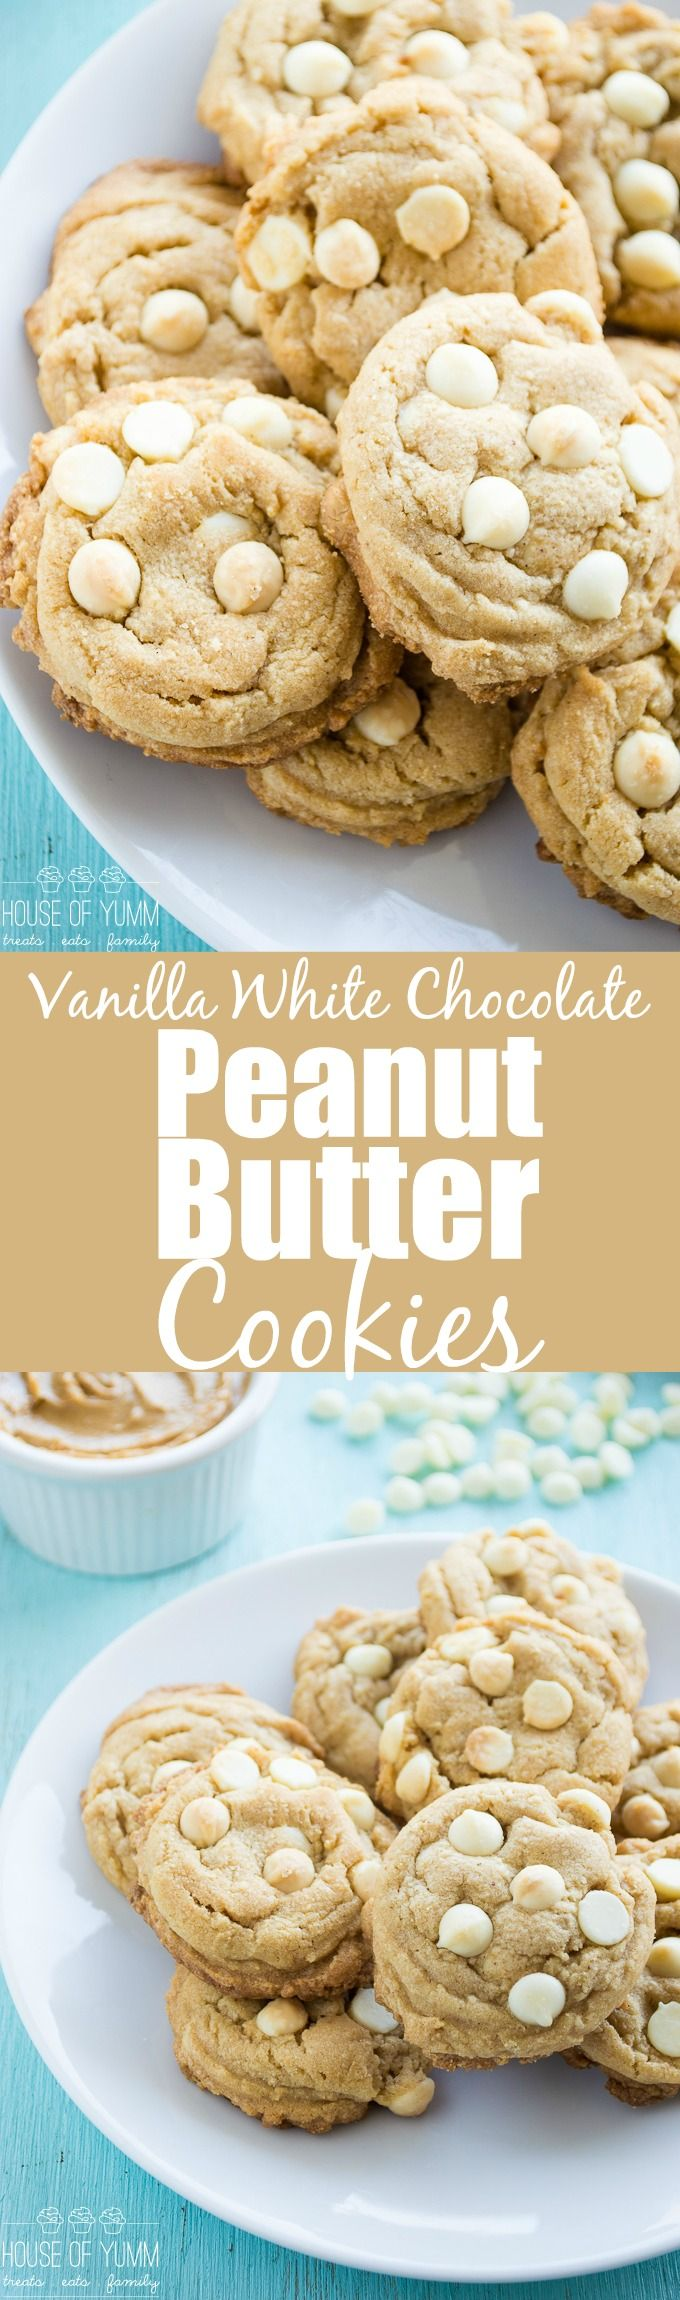 Vanilla White Chocolate Peanut Butter Cookies - Soft and Chewy!  A classic peanut butter cookie, and tweaked it slightly to load up on white chocolate and vanilla.